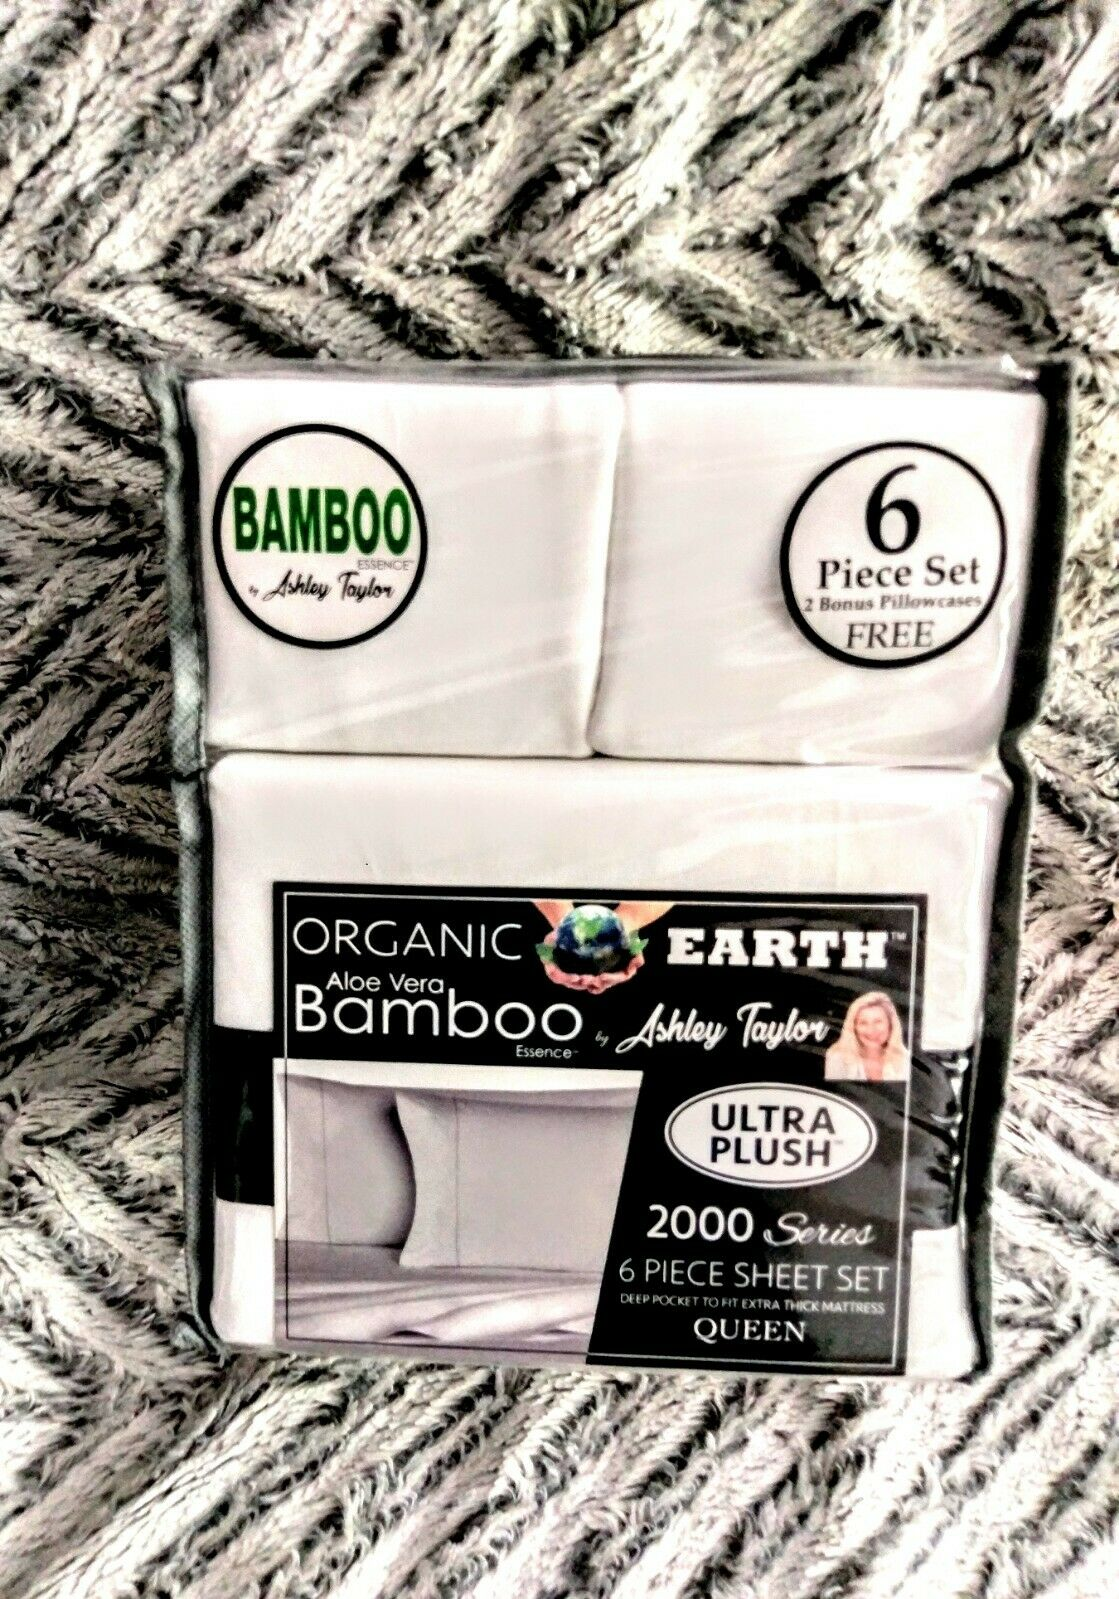 ORGANIC BAMBOO ESSENCE BY ASHLEY TAYLOR BED SHEET SET QUEEN SIZE BED SHEET SET